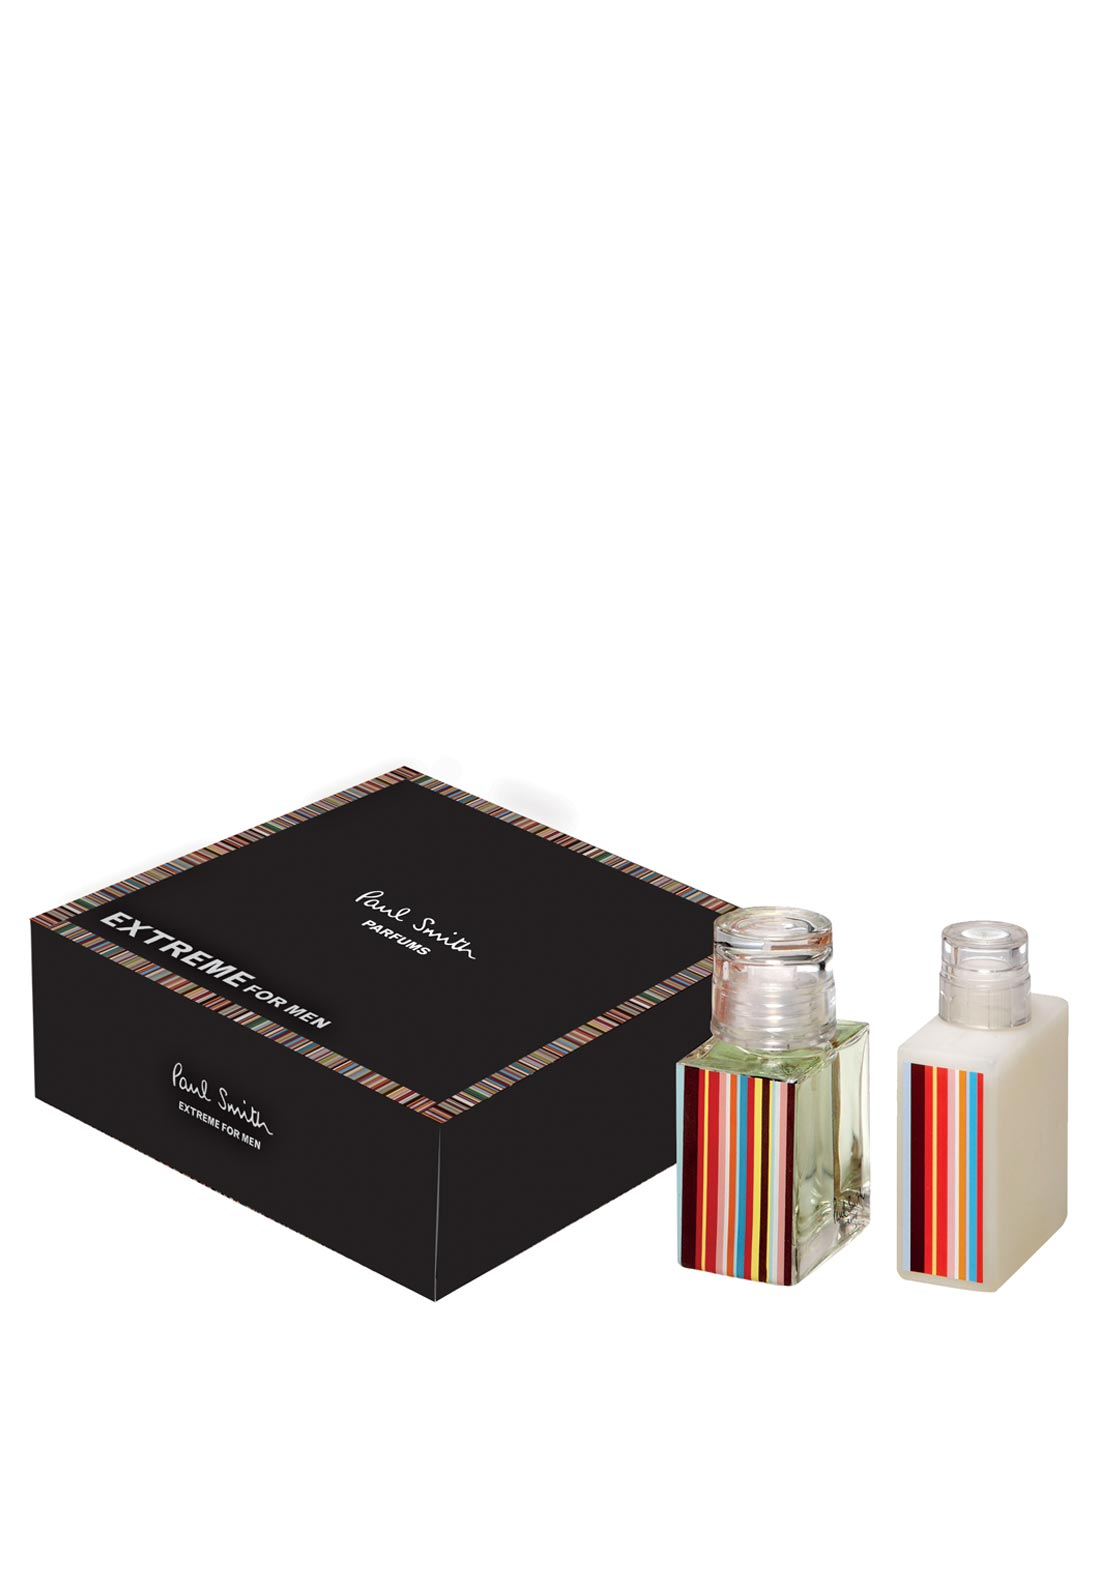 Paul Smith Extreme Eau De Toilette Gift Set for Men, 50ml